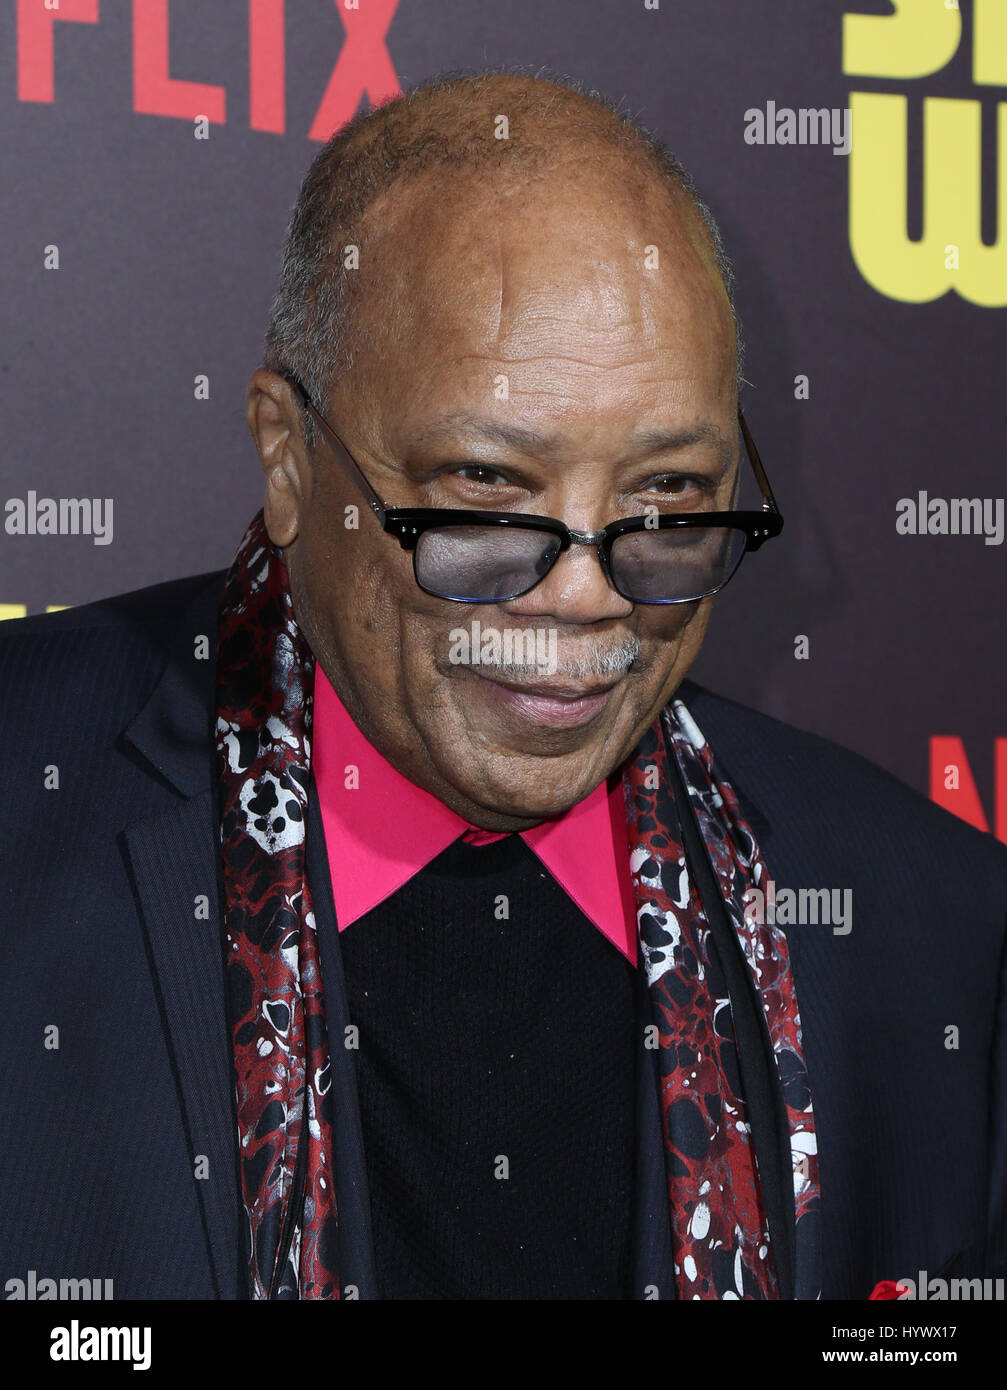 "Los Angeles, USA. 6. April 2017. Quincy Jones, der Premiere von Netflix ""Sandy Wexler"". Bildnachweis: Stockbild"